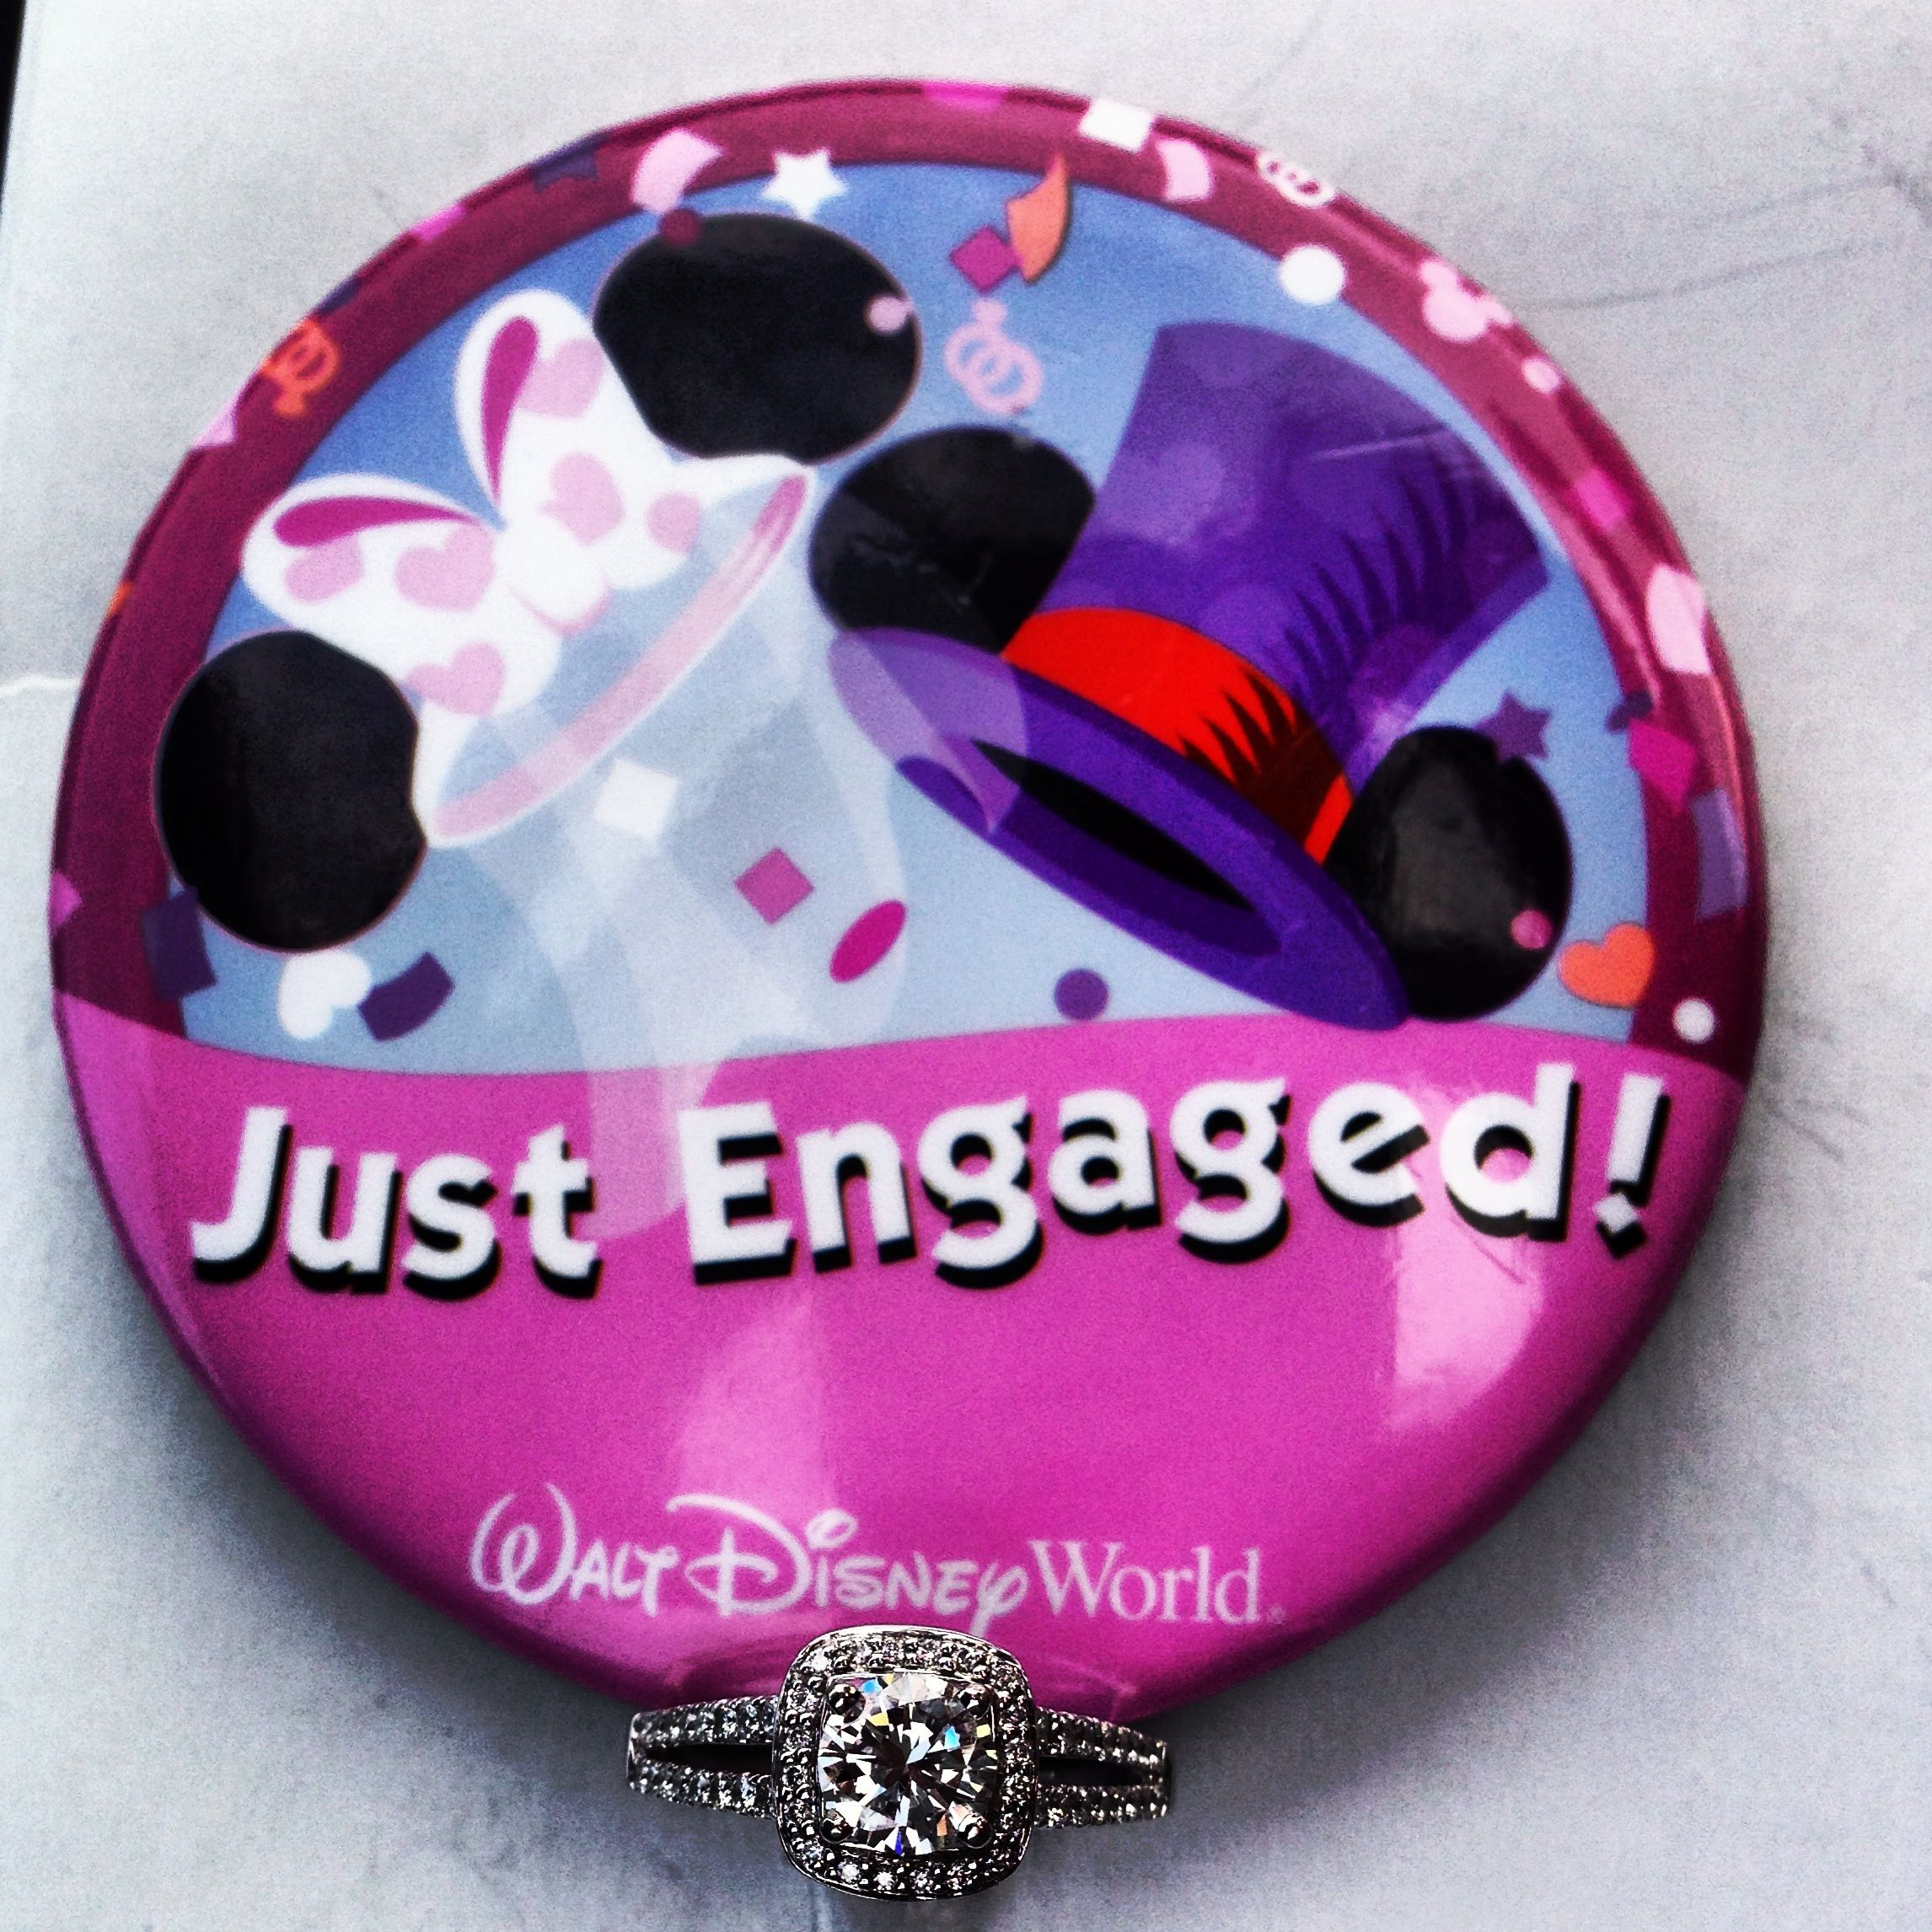 Picture for our engagement announcement...my ring + pin from Disney ...